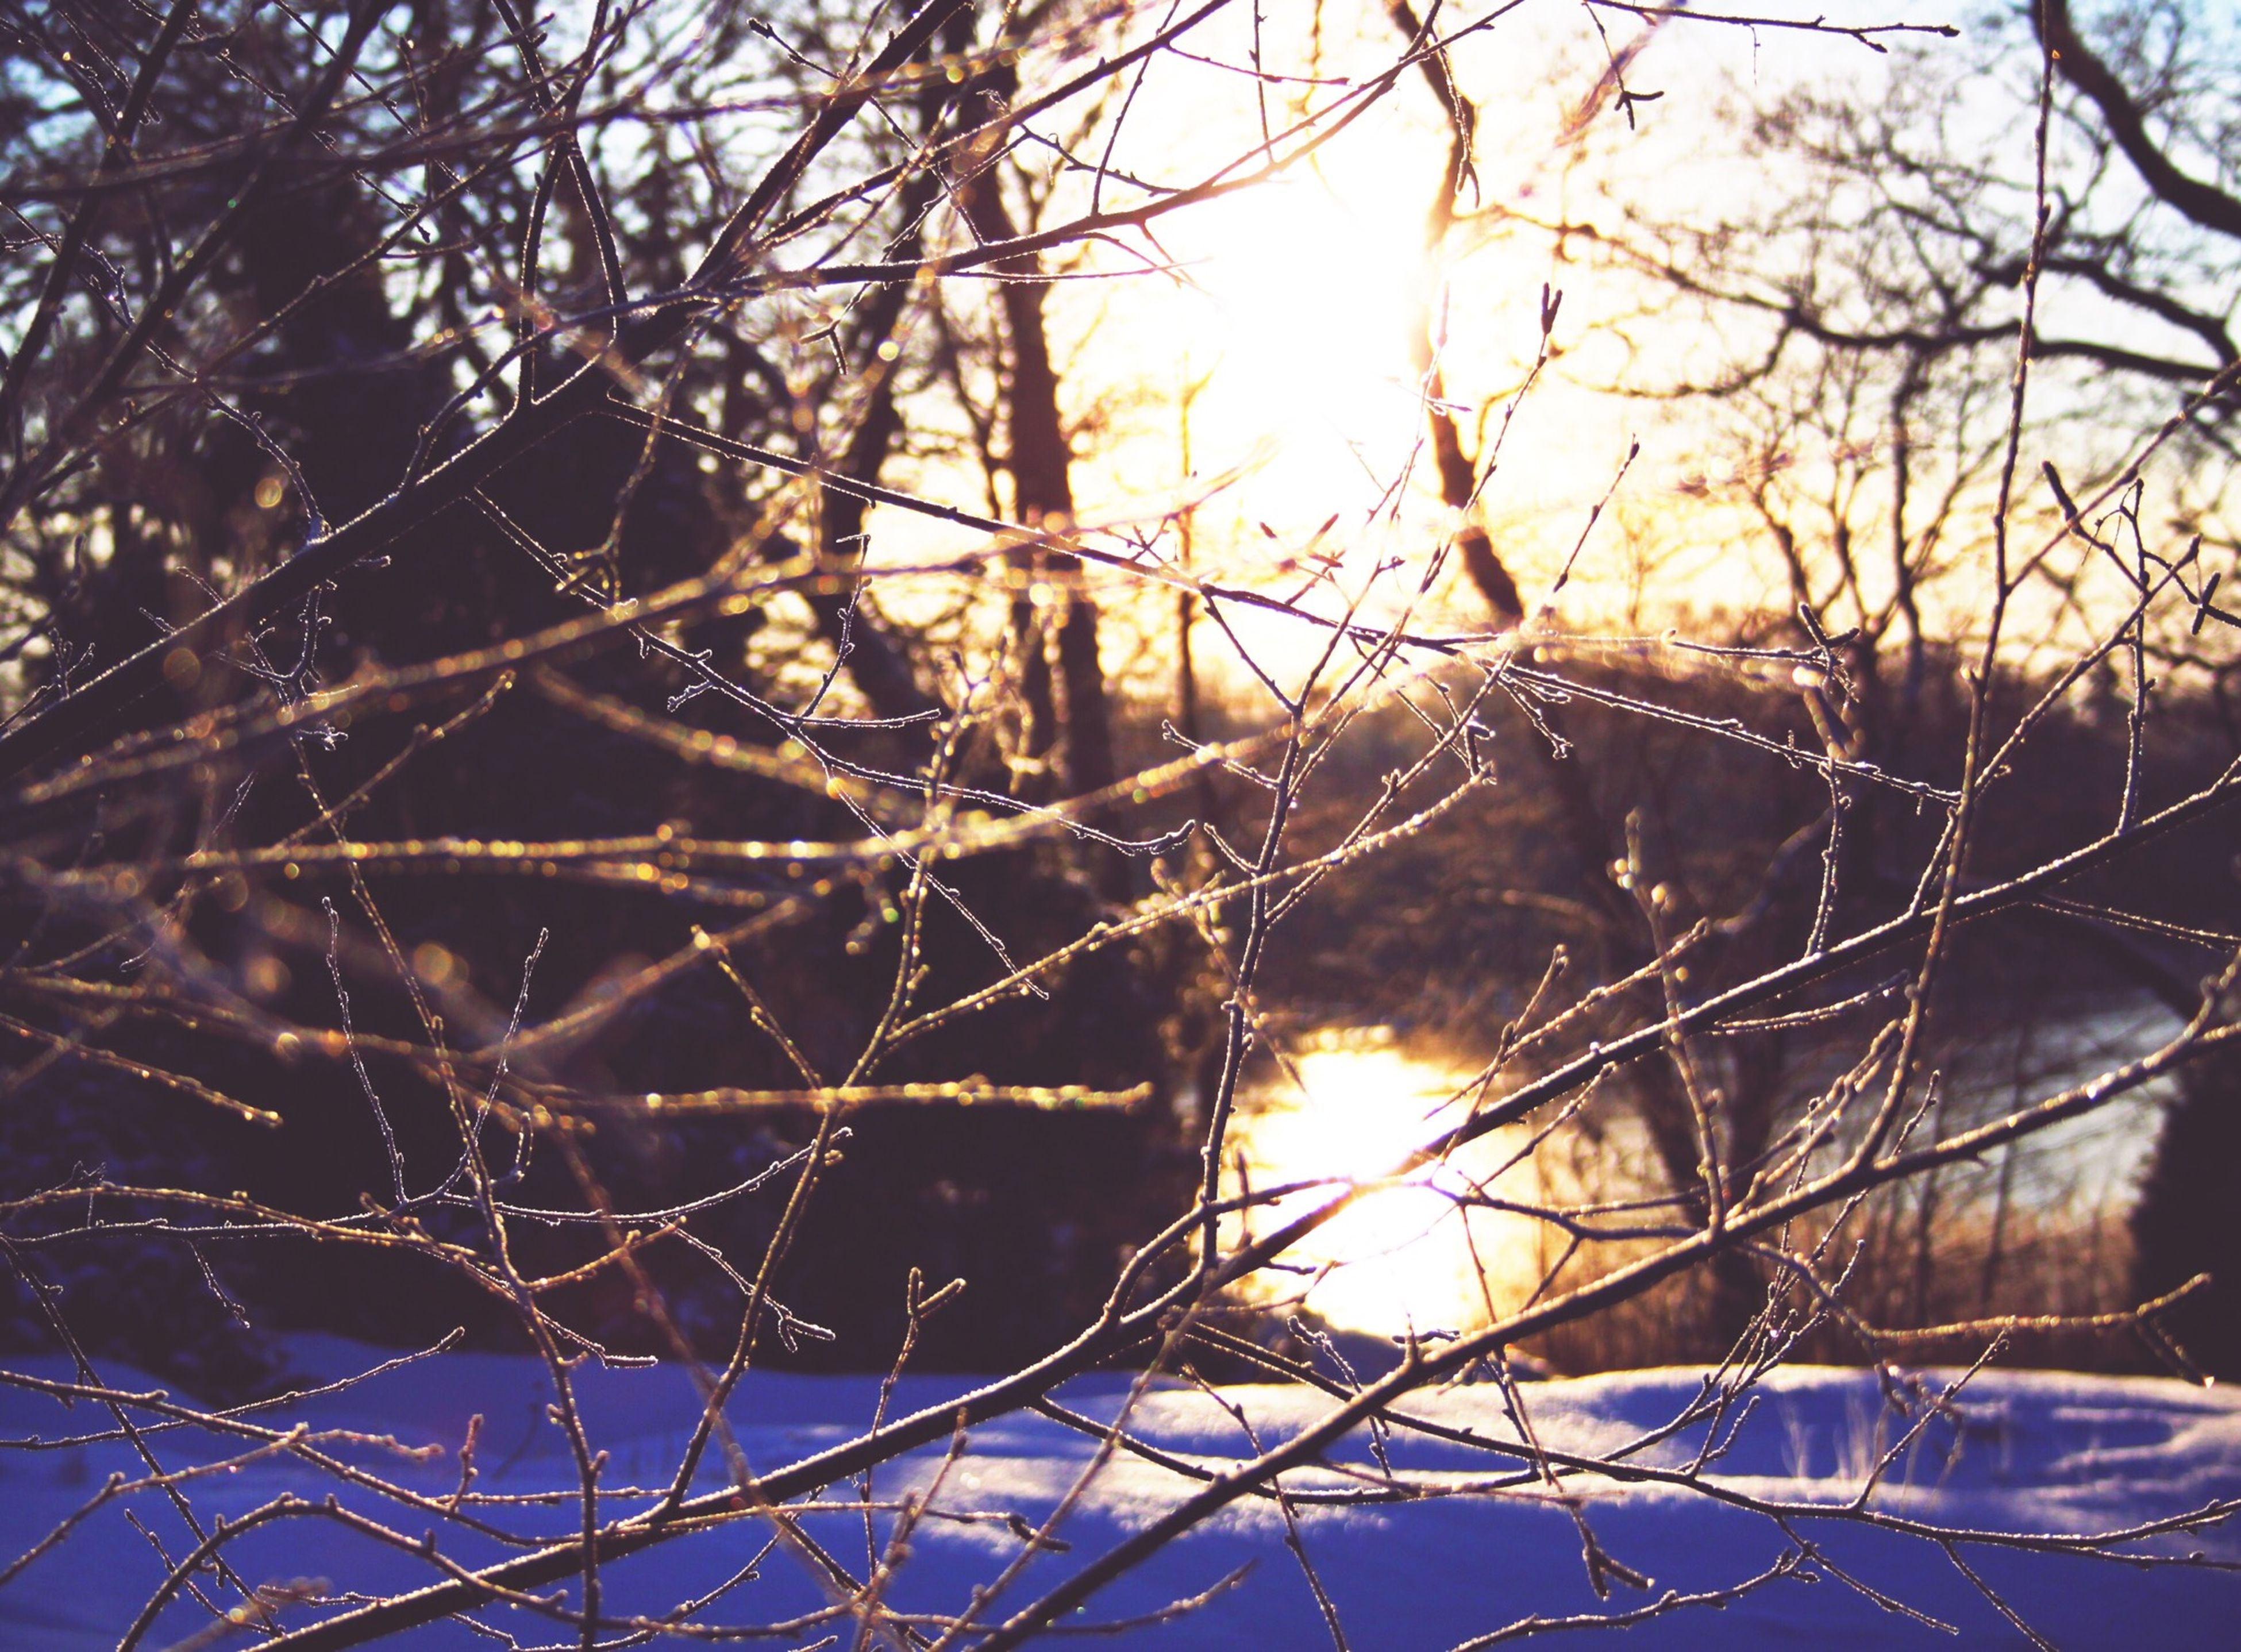 water, branch, tree, spider web, nature, bare tree, close-up, clear sky, reflection, focus on foreground, outdoors, sunlight, beauty in nature, sky, tranquility, day, season, no people, winter, sun